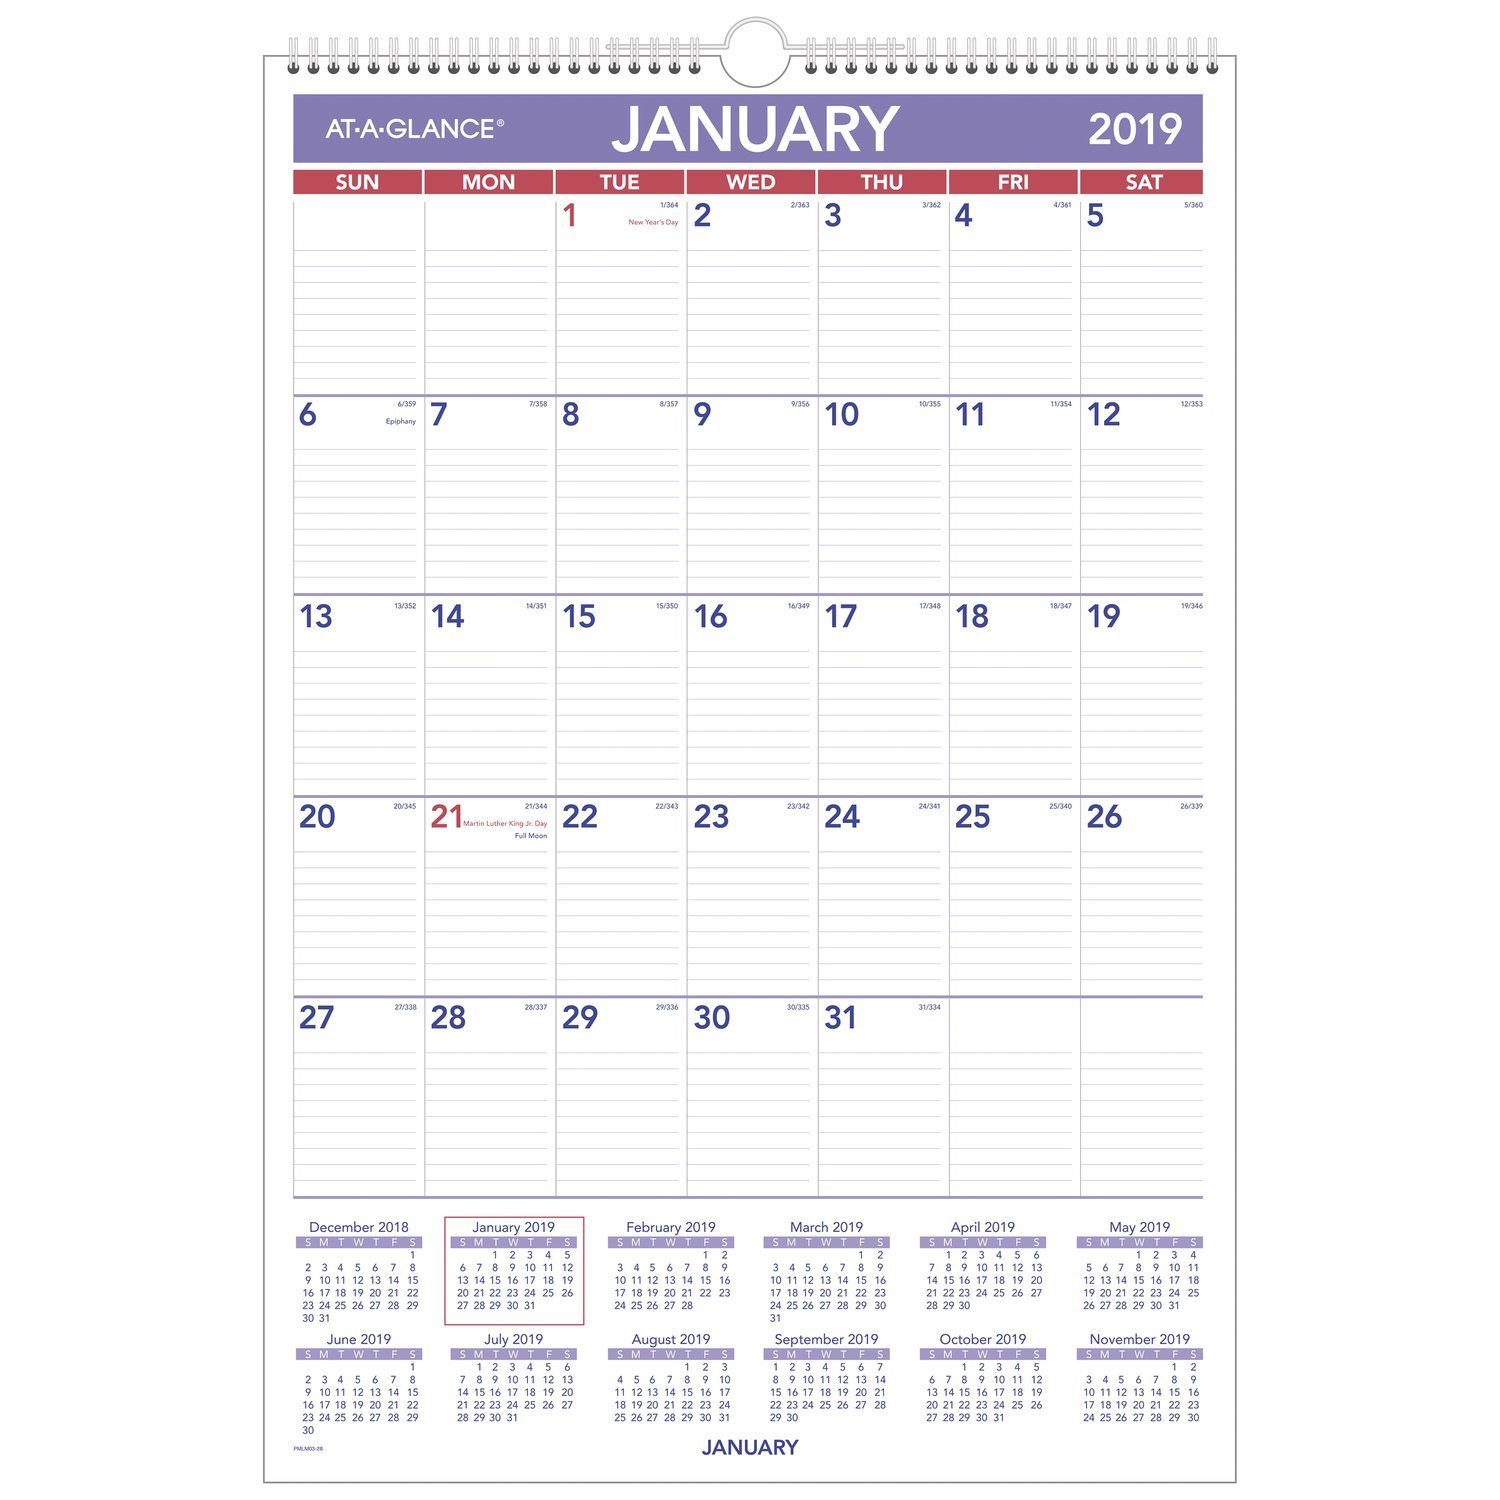 AT-A-GLANCE Monthly Wall Calendar, January 2019 - December 2019, 15-1/2'' x 22-3/4'', Erasable, Wirebound (PMLM0328)